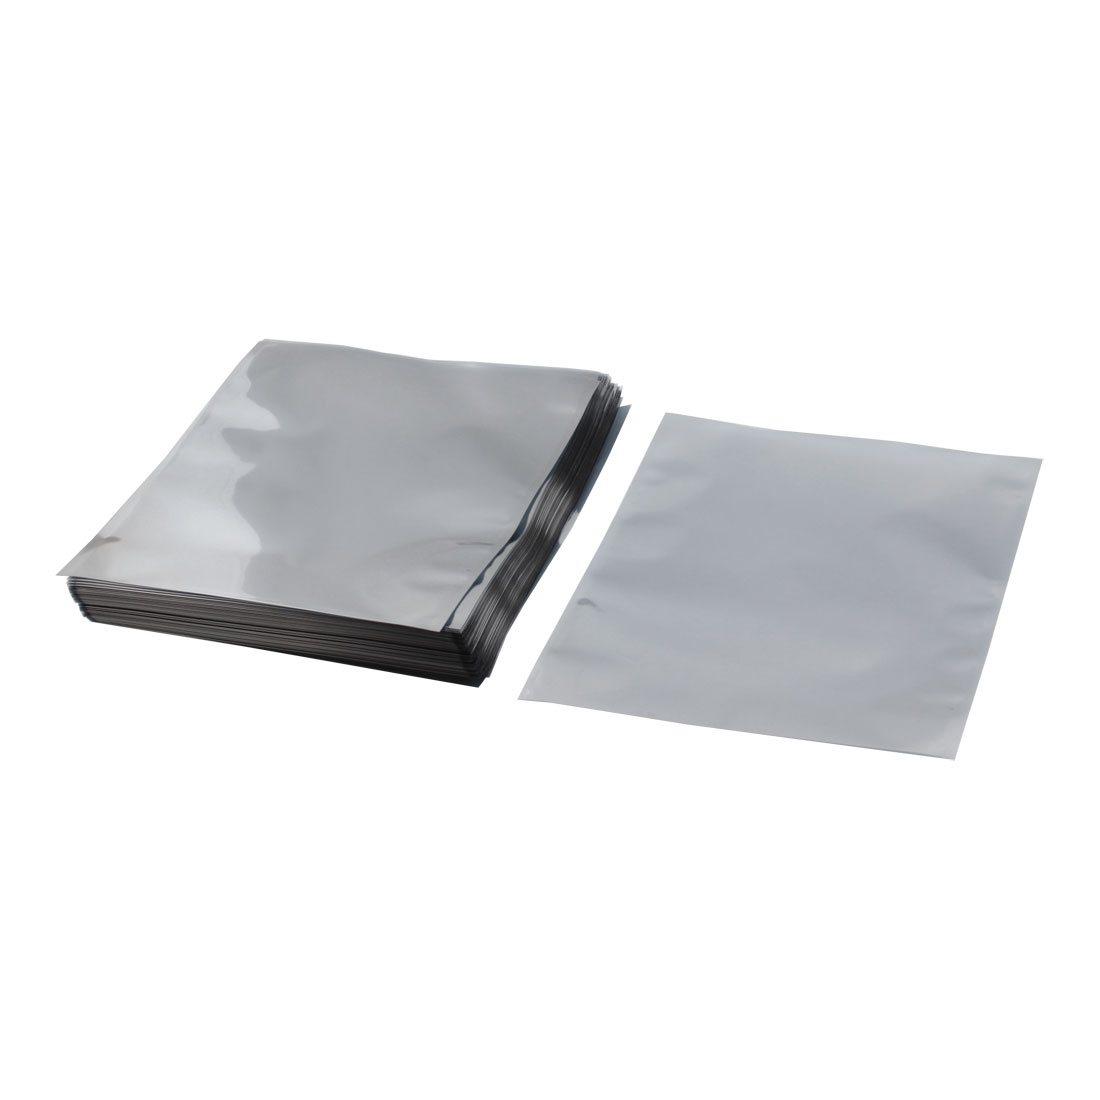 100 Pcs 21x24cm Rectangle Open Top Plastic Anti Static Antistatic Shielding Bags Packagings Holders for Electronic Components